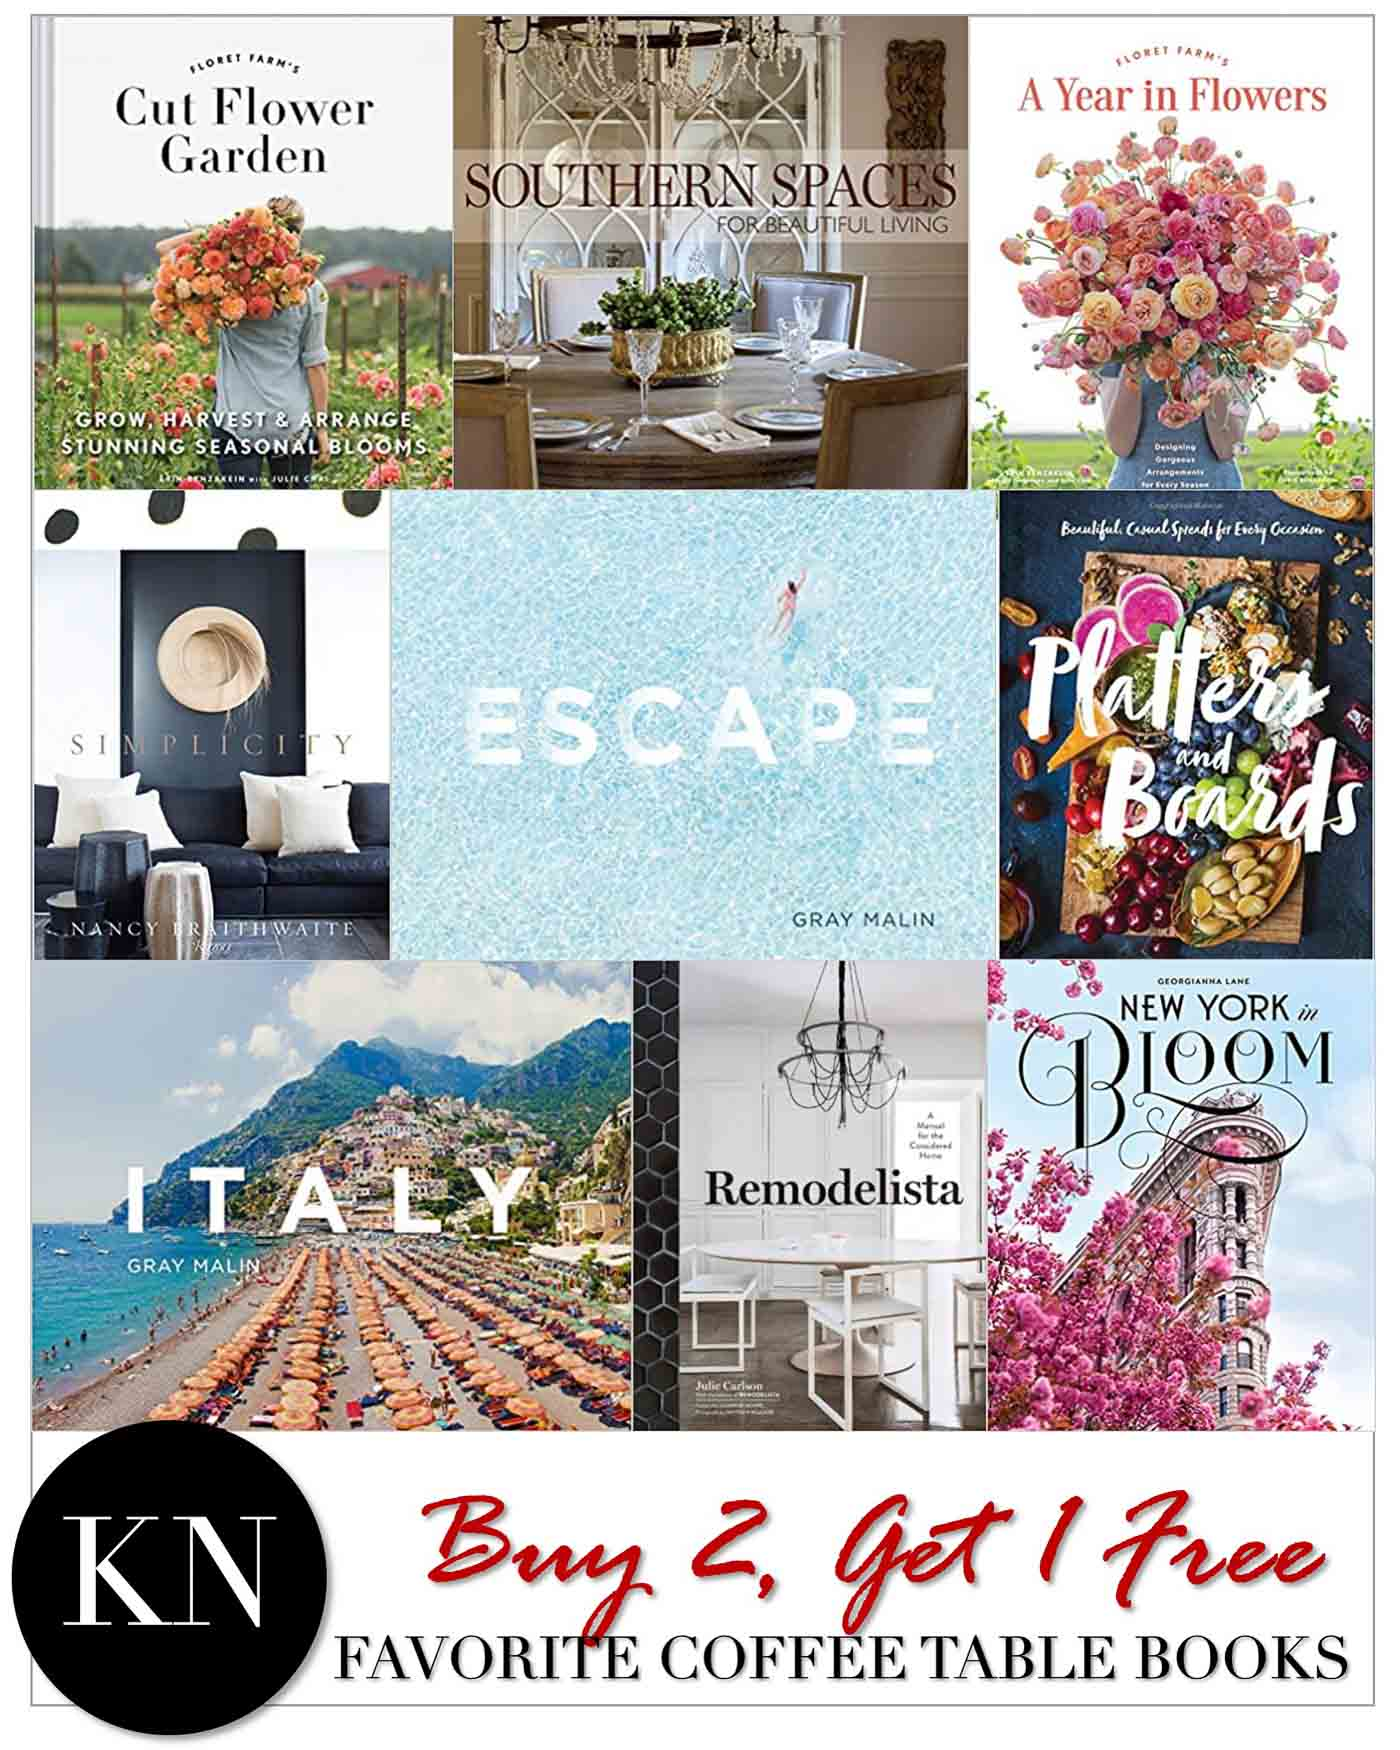 Favorite Coffee Table Books